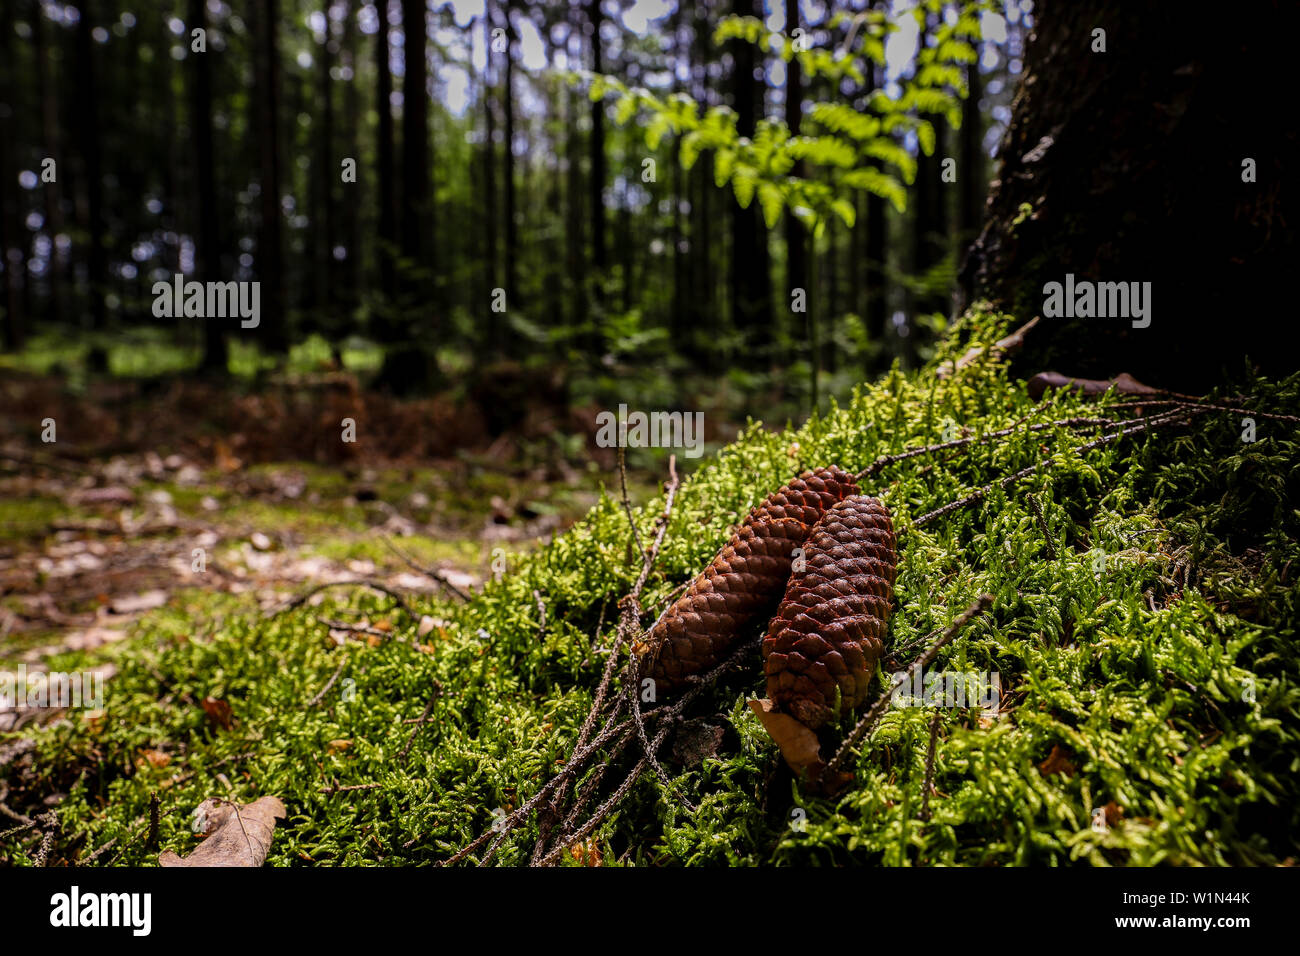 Pine cones fallen on forest ground with sunlight - Stock Image